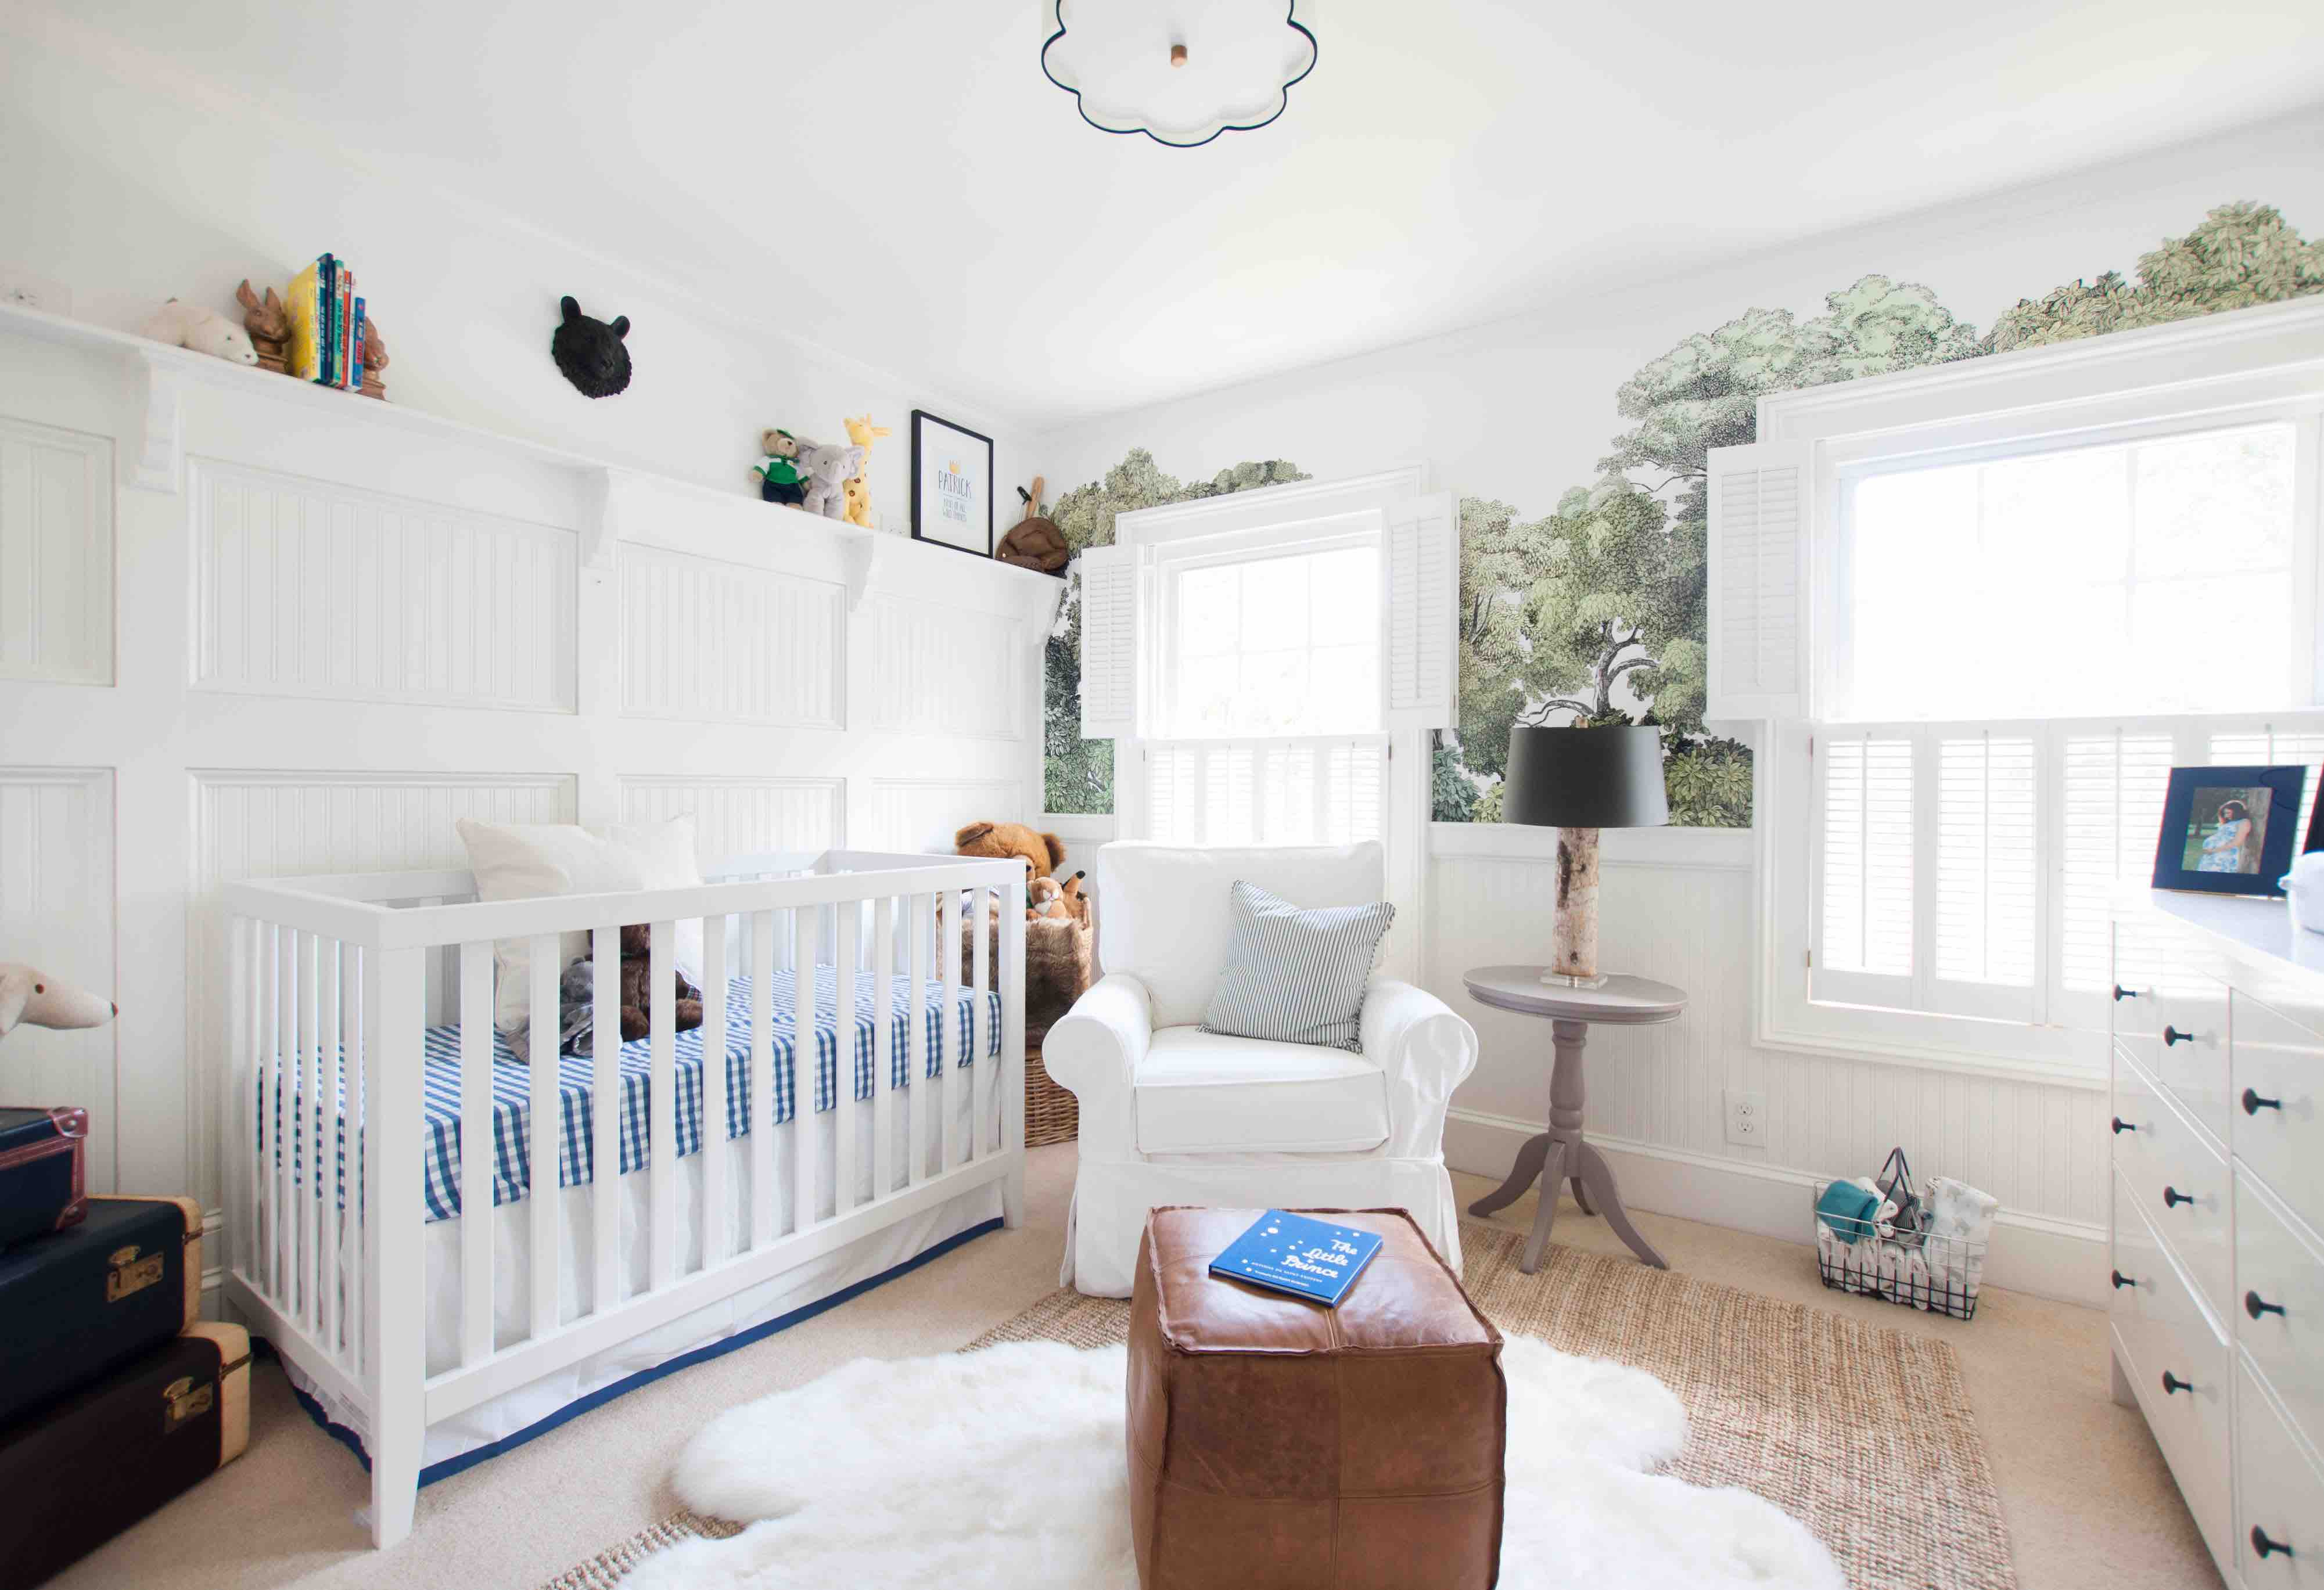 Nursery design tip 1: Design for light control.